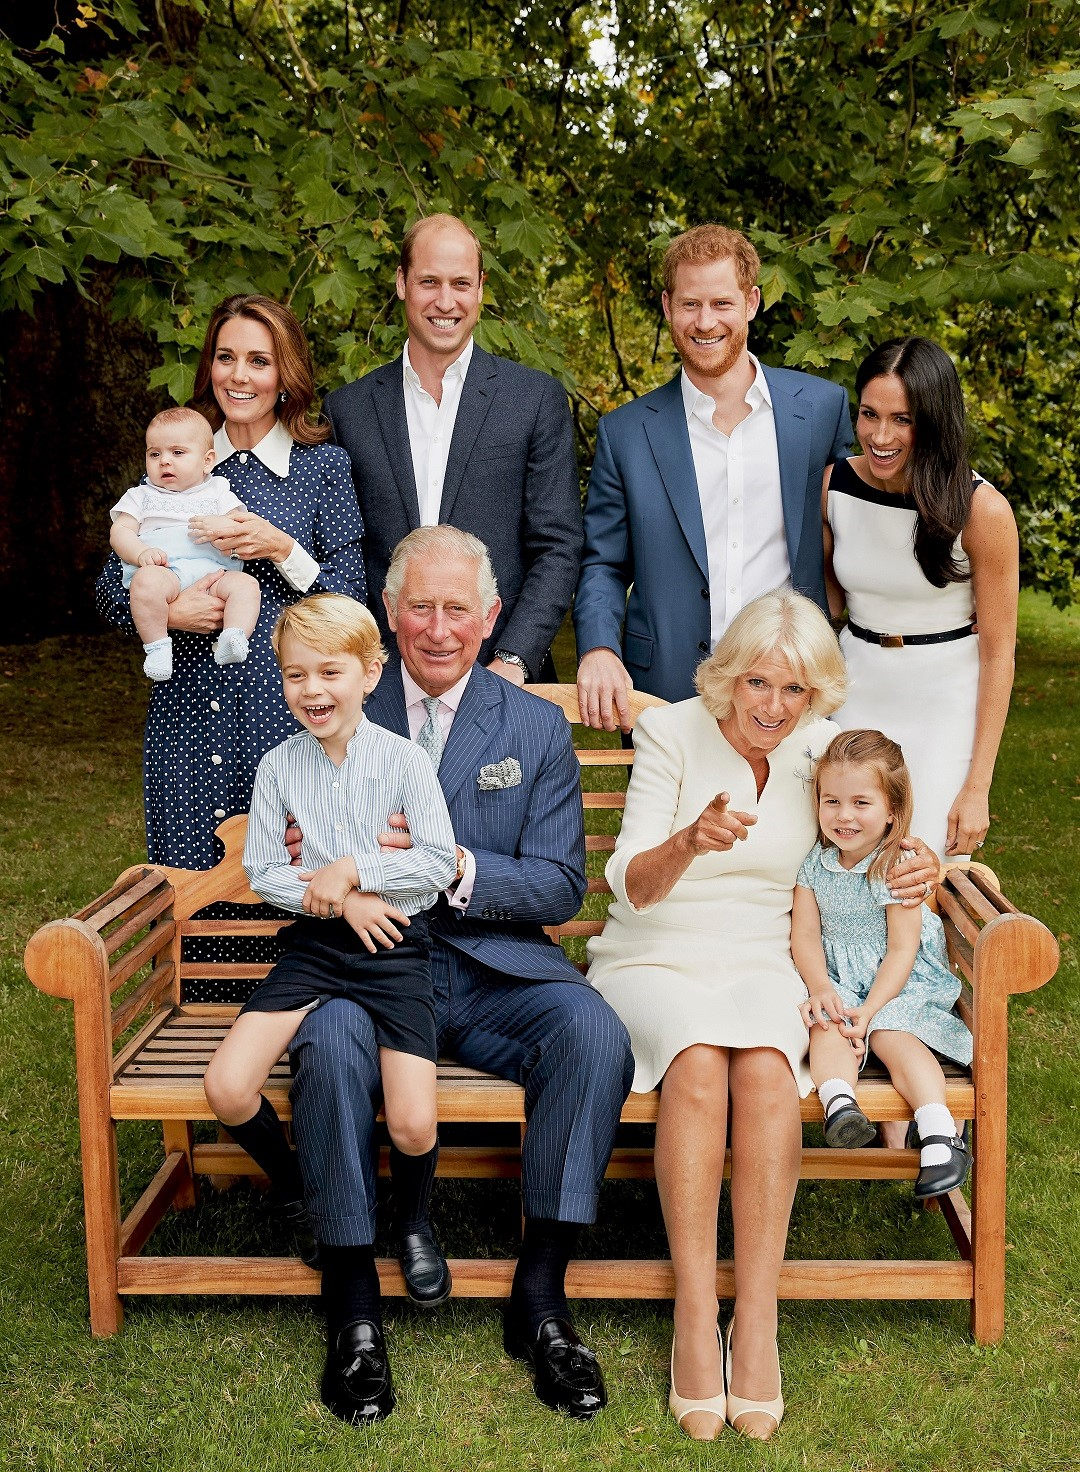 Royal Family Prince Harry Prince Meghan Markle Prince Charles Prince George Prince William Kate Middleton Camilla Parker Bowles